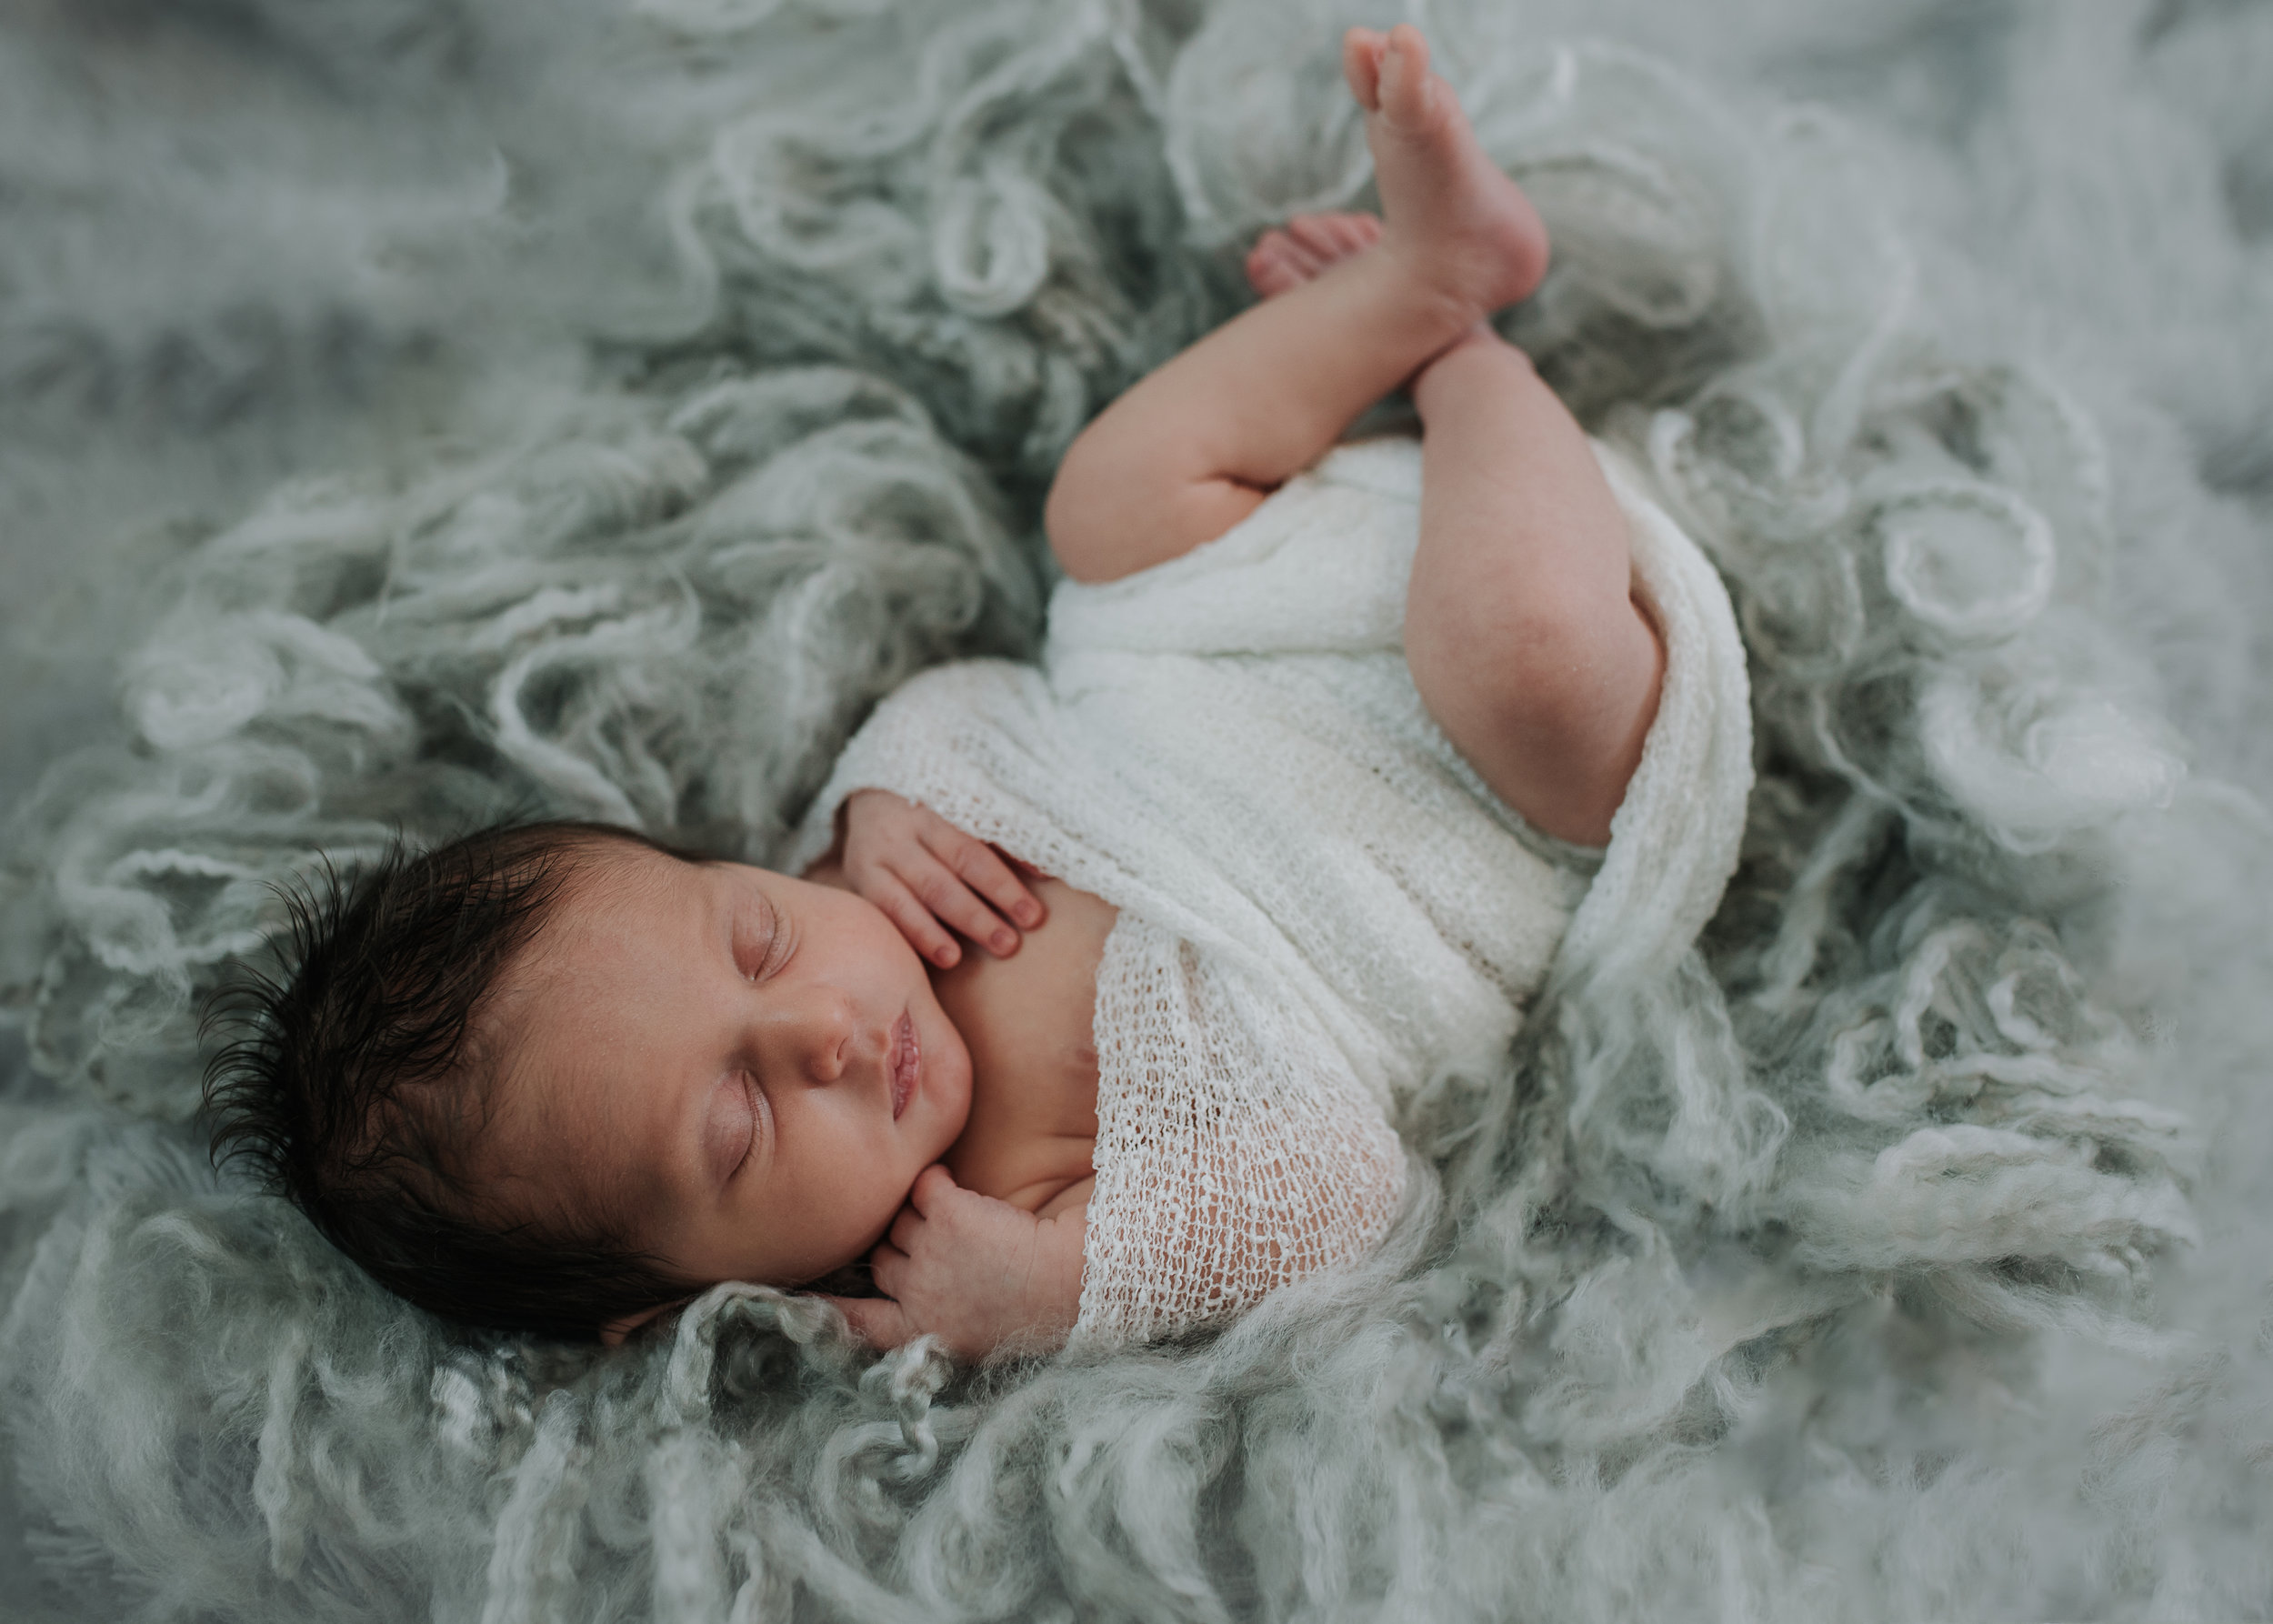 Sunshine_Coast_B.C_Newborn_Photographer_Paige_lorraine_photography (4).jpg